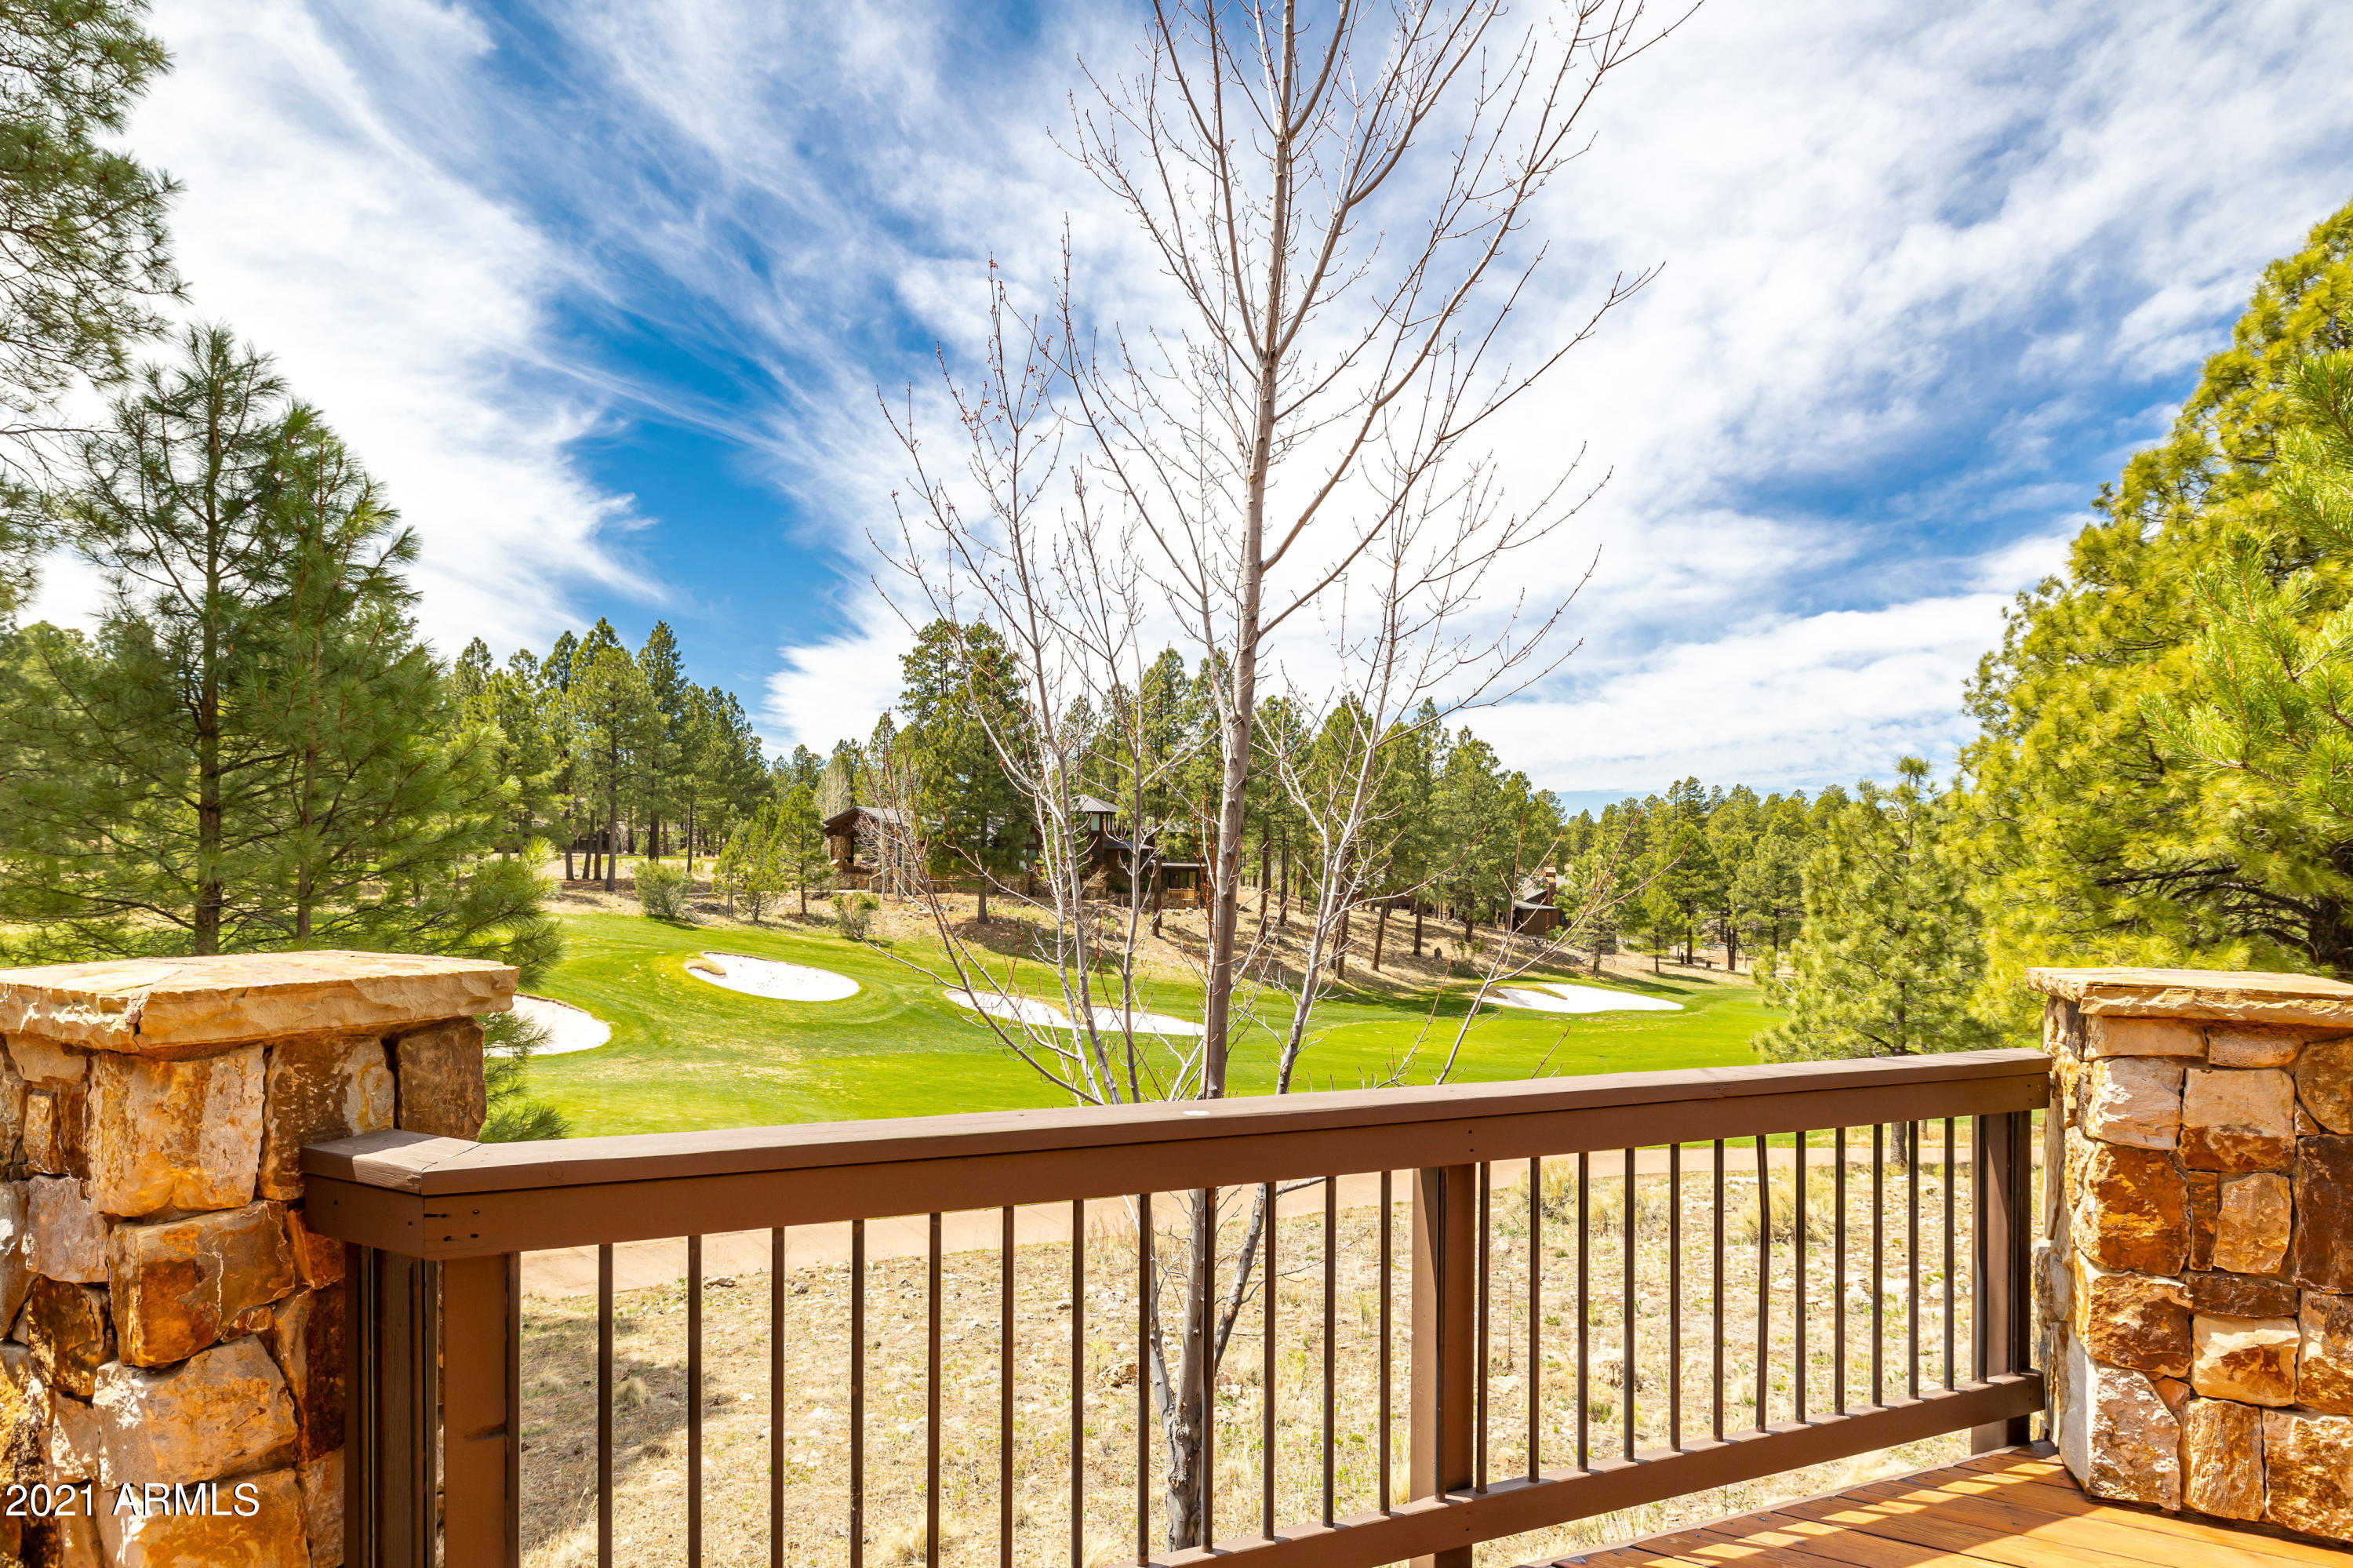 $1,950,000 - 4Br/4Ba - Home for Sale in Pine Canyon, Flagstaff